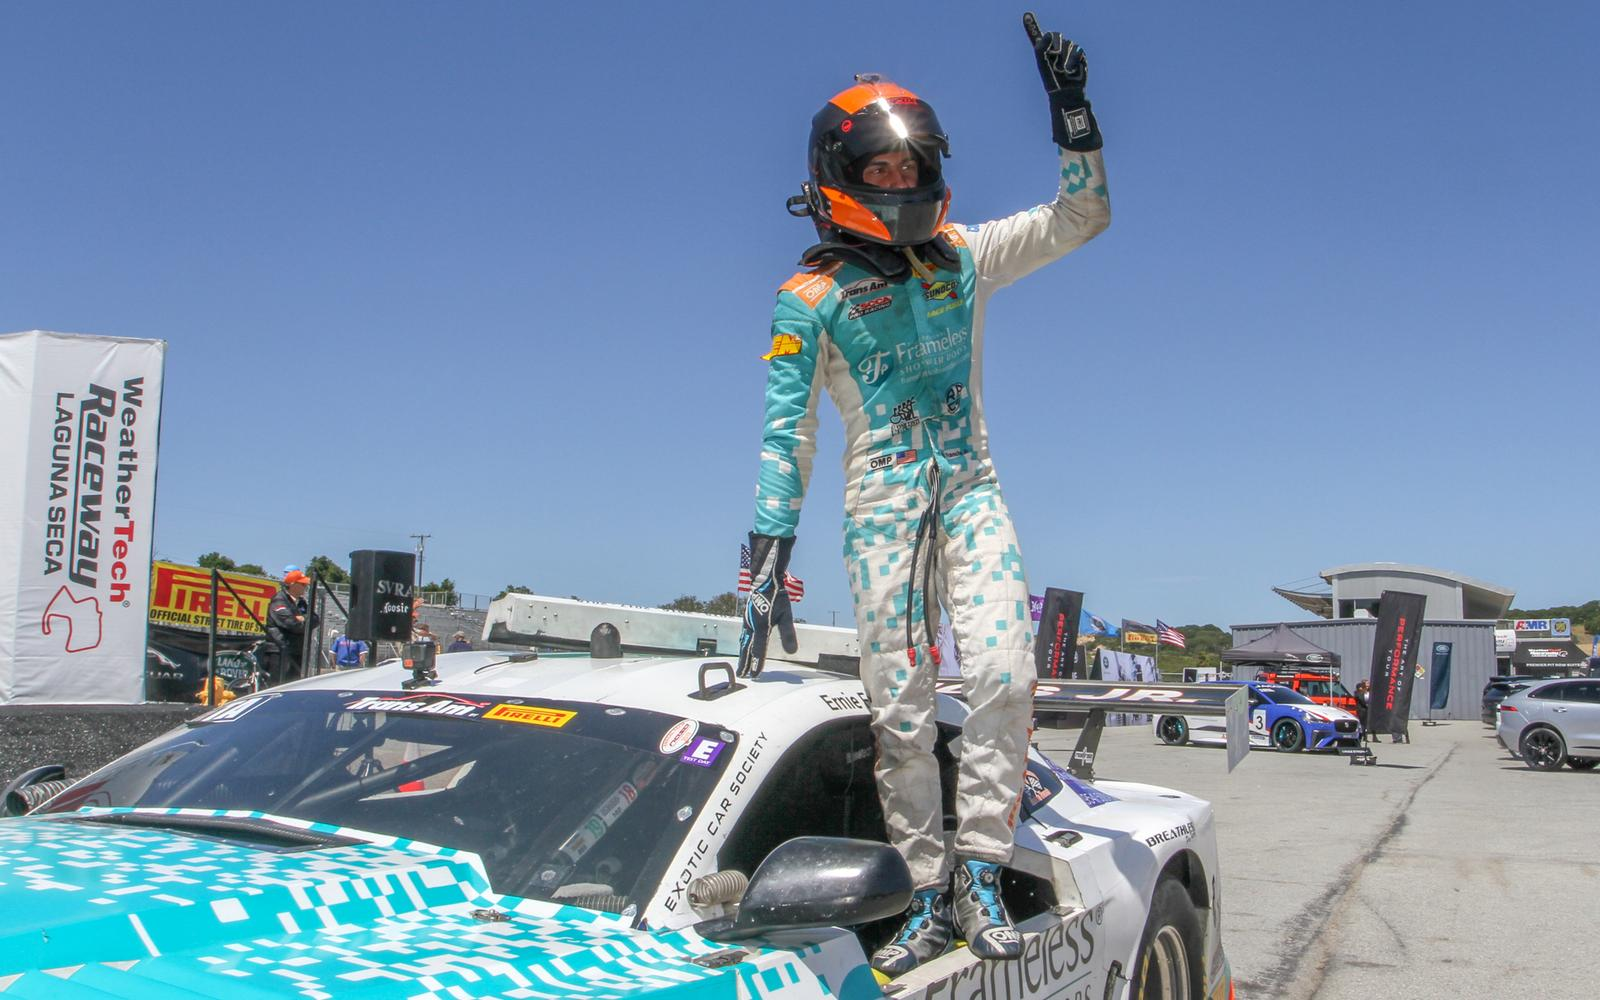 Francis Jr. Takes the Checkered at Laguna